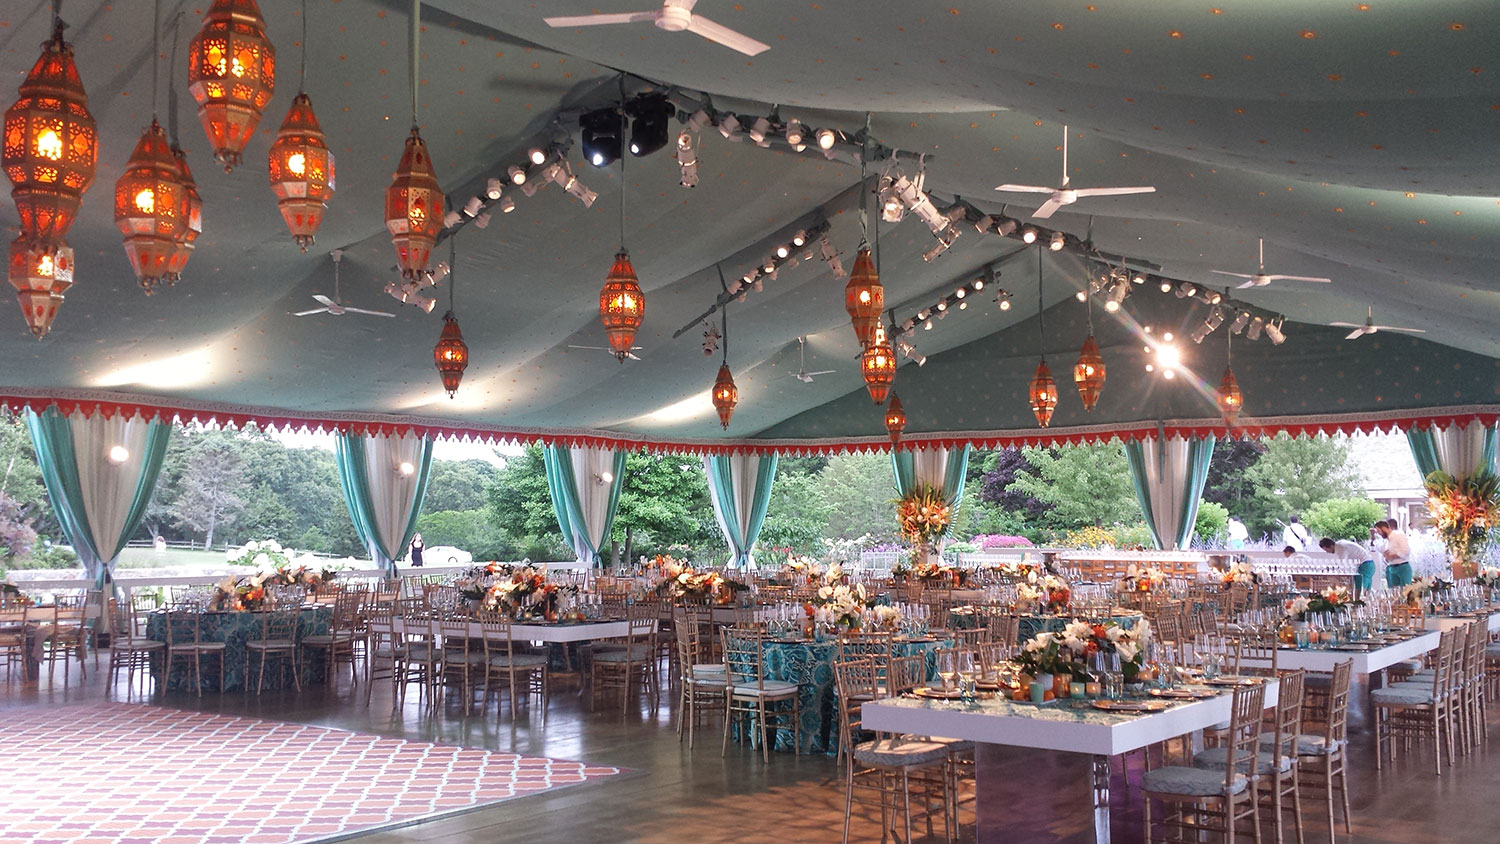 raj-tents-destination-weddings-frame-tent-lamps.jpg